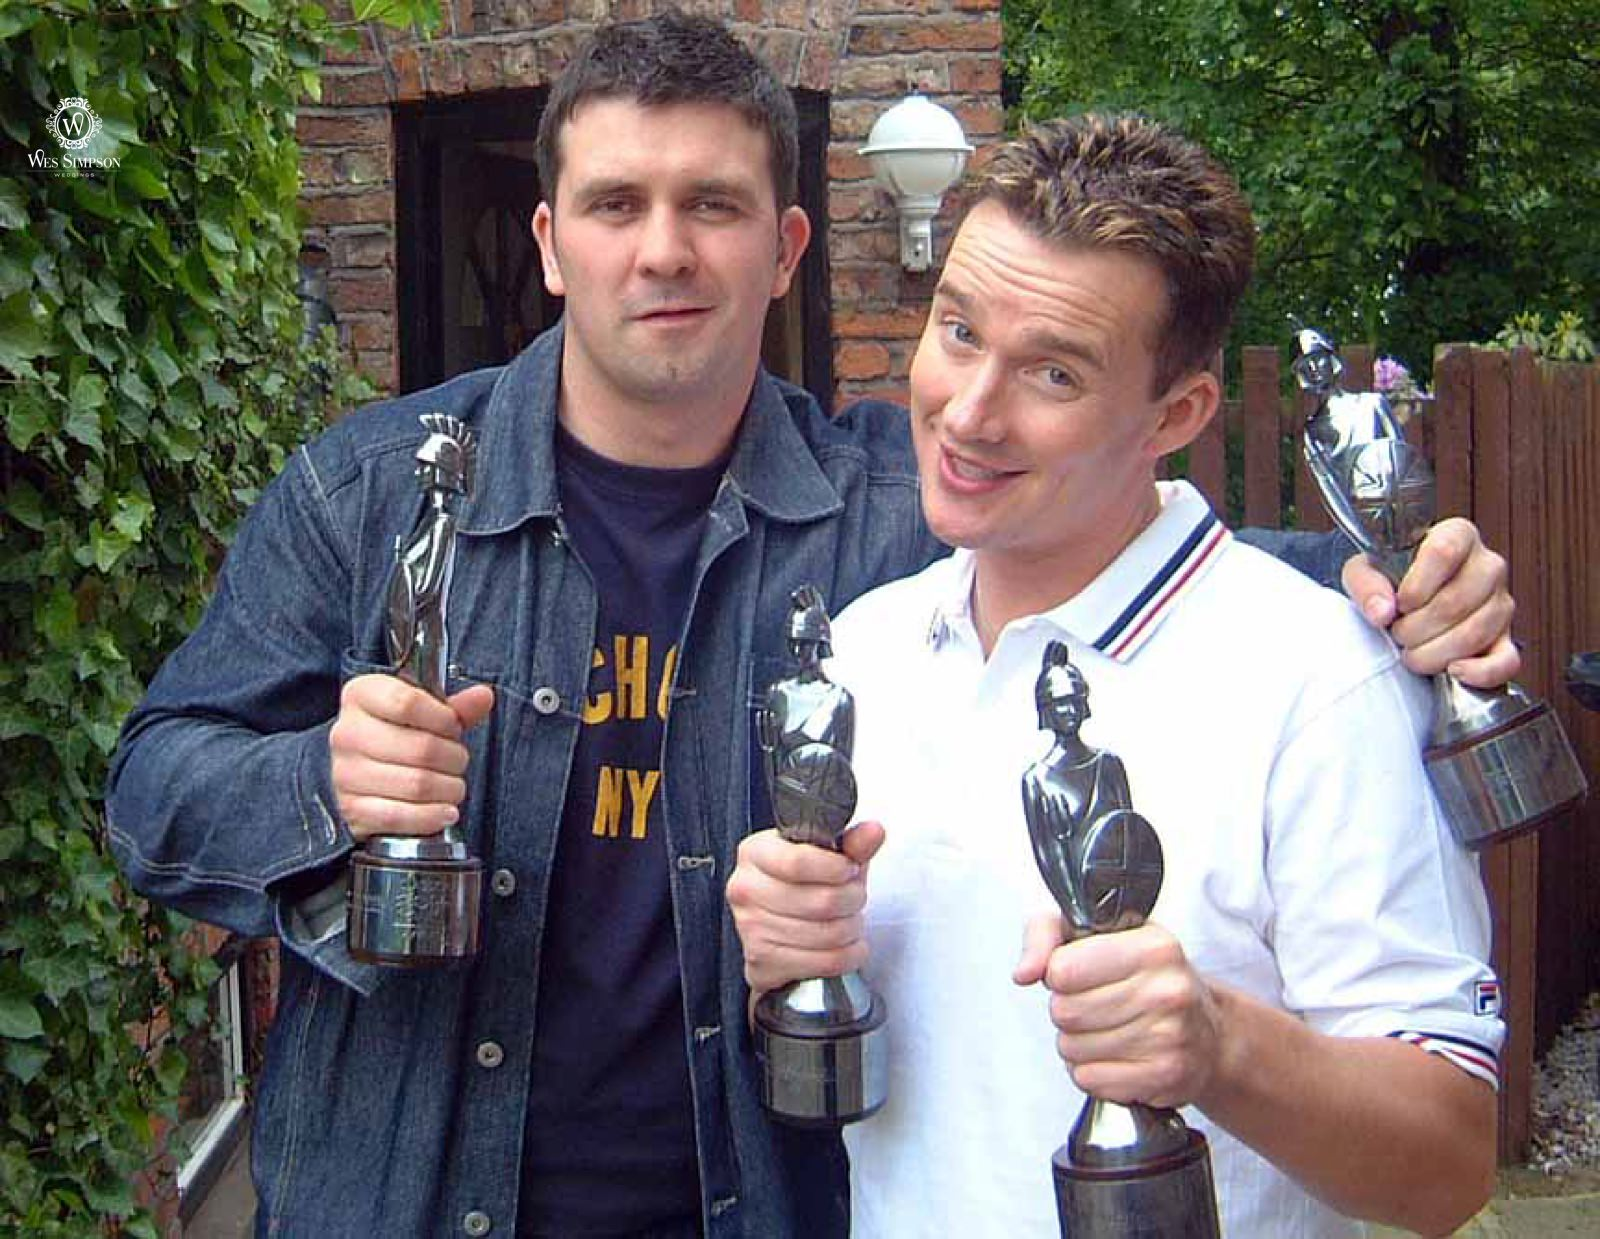 Wes Simpson and Brit Award winner Russell Watson